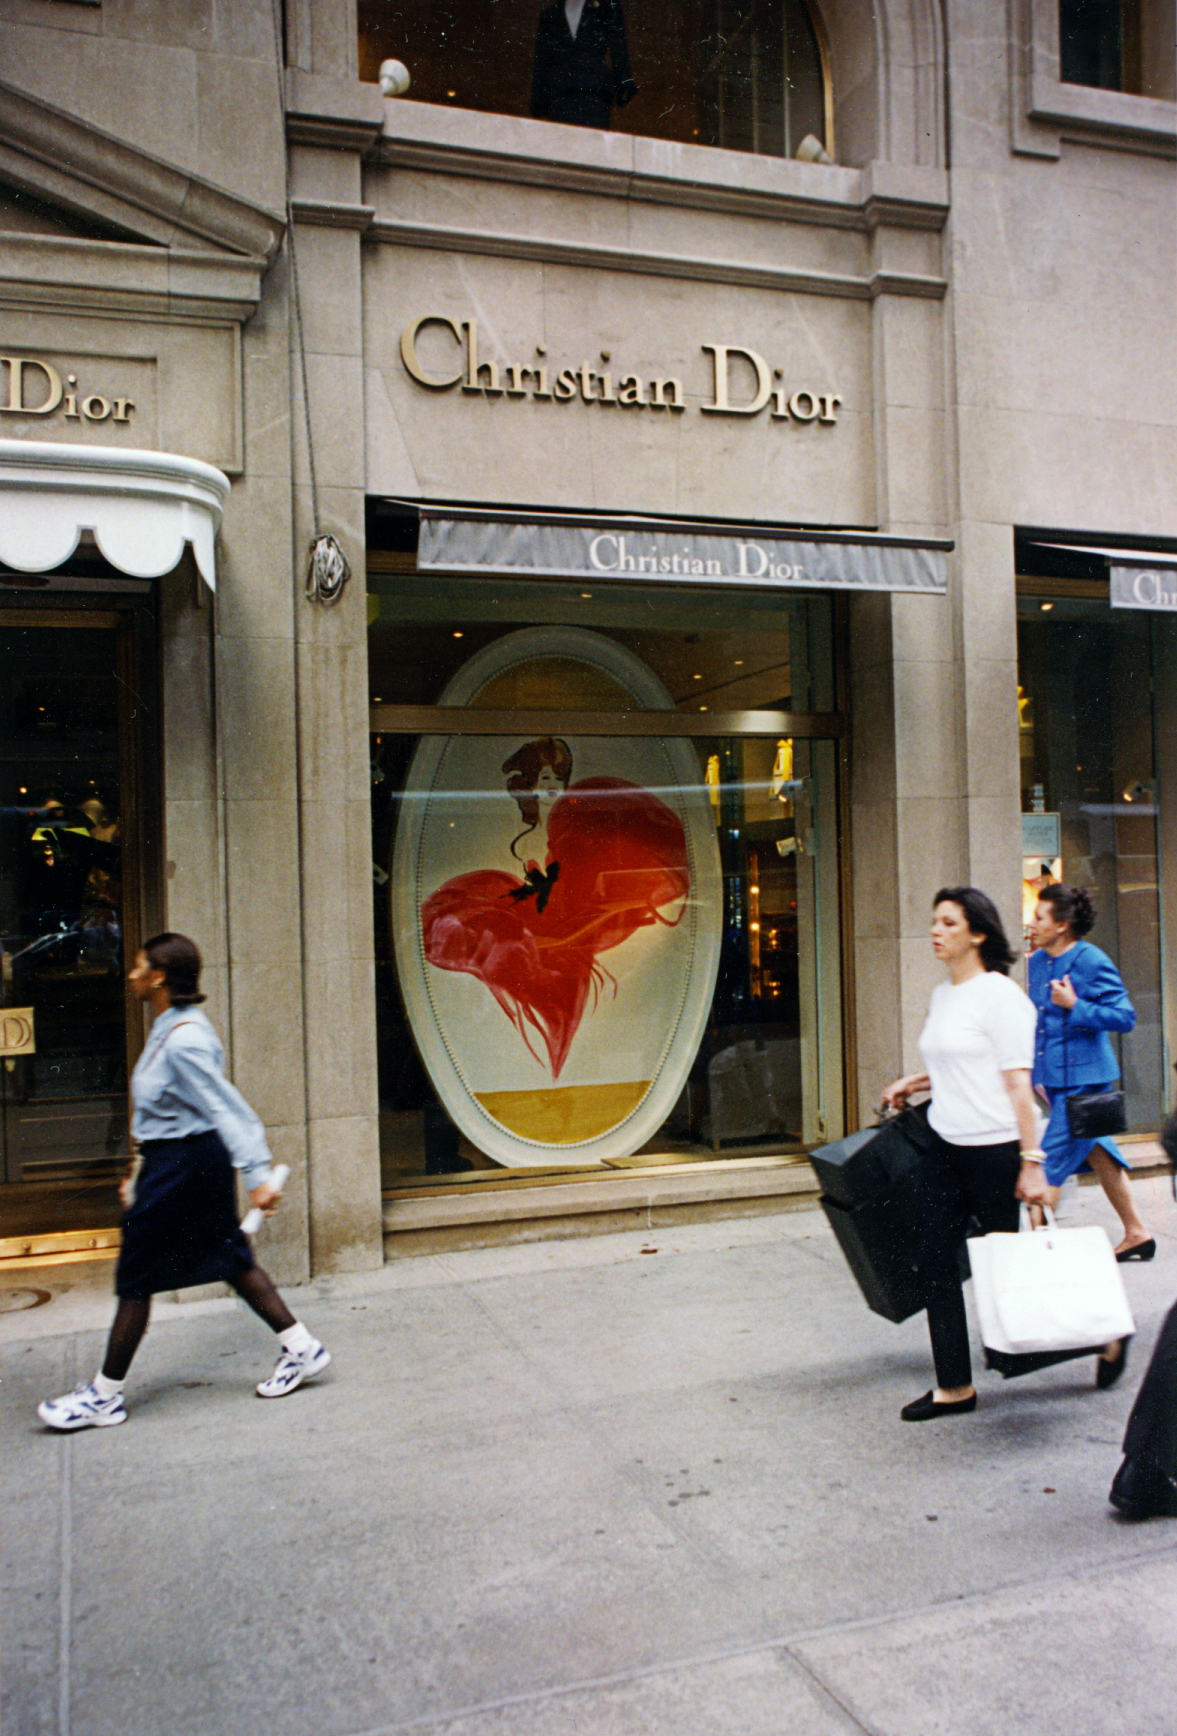 Christian Dior: decorative painting and window installation.